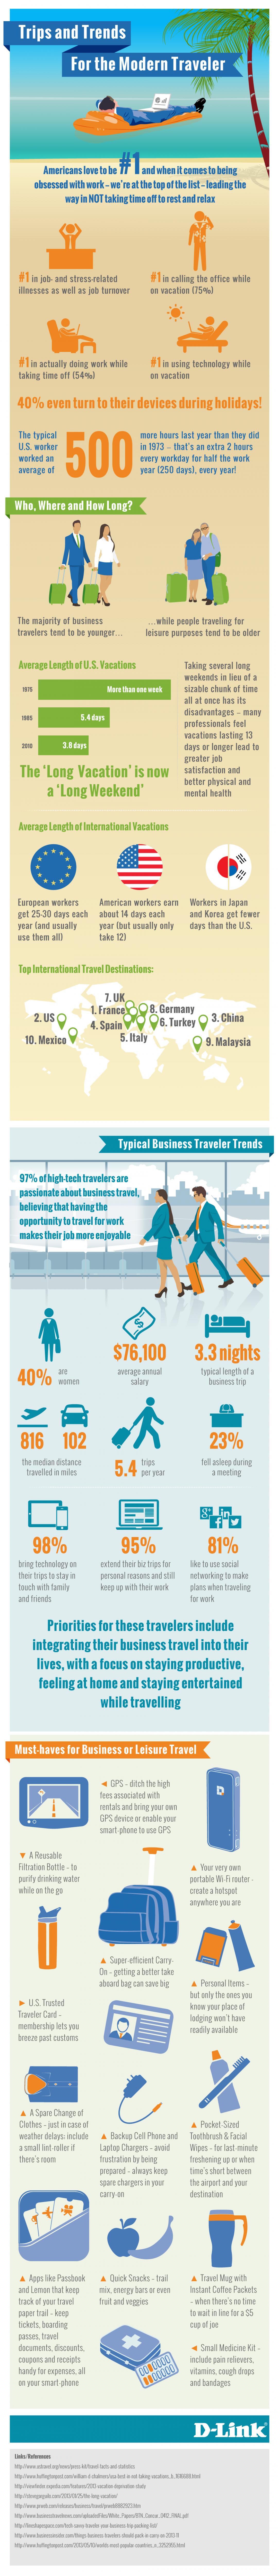 Trips and Trends for the Modern Traveler Infographic